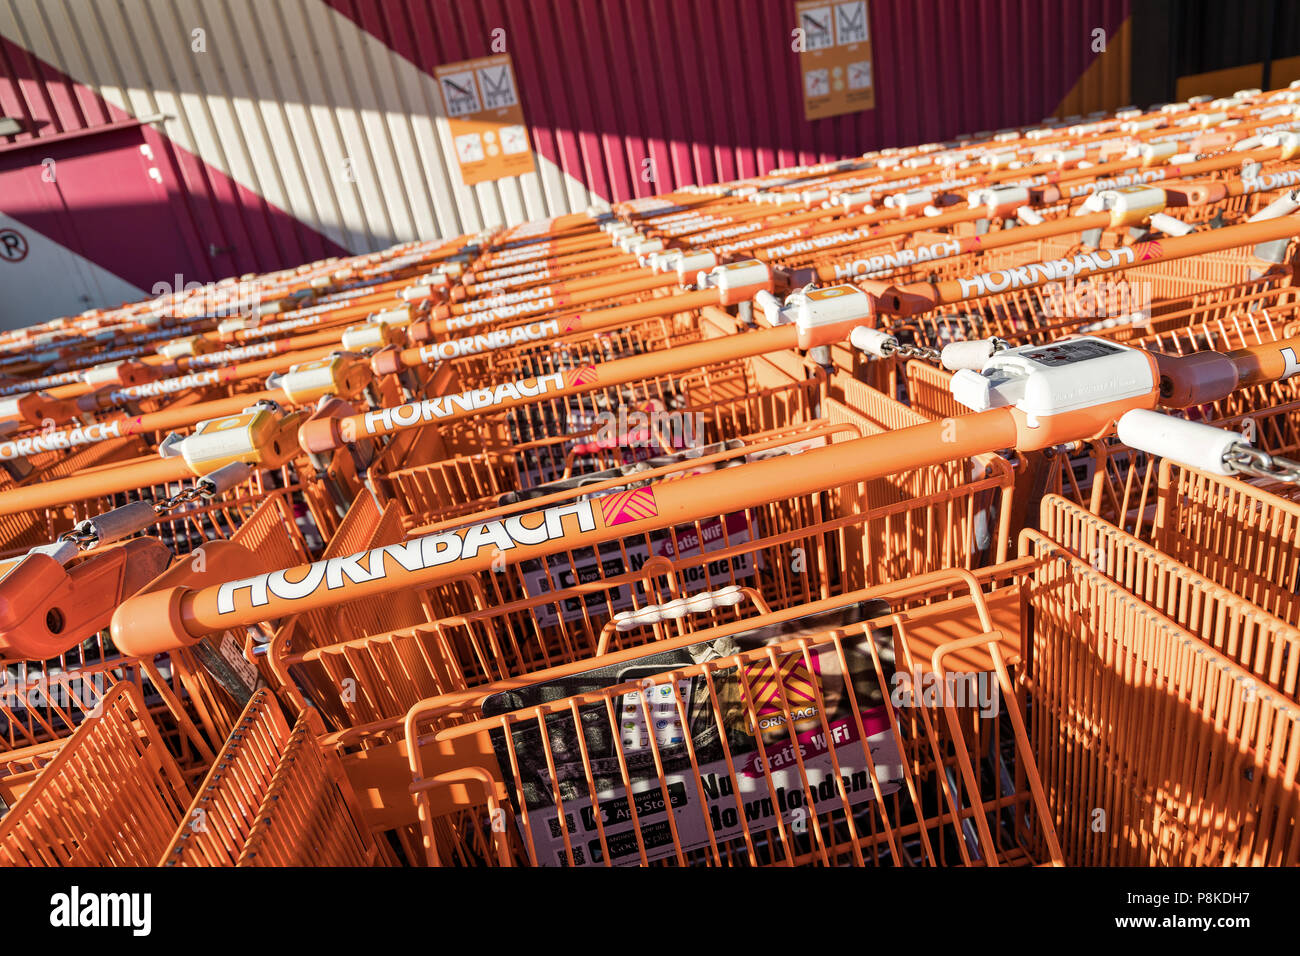 Hornbach D Hornbach Stock Photos Hornbach Stock Images Alamy